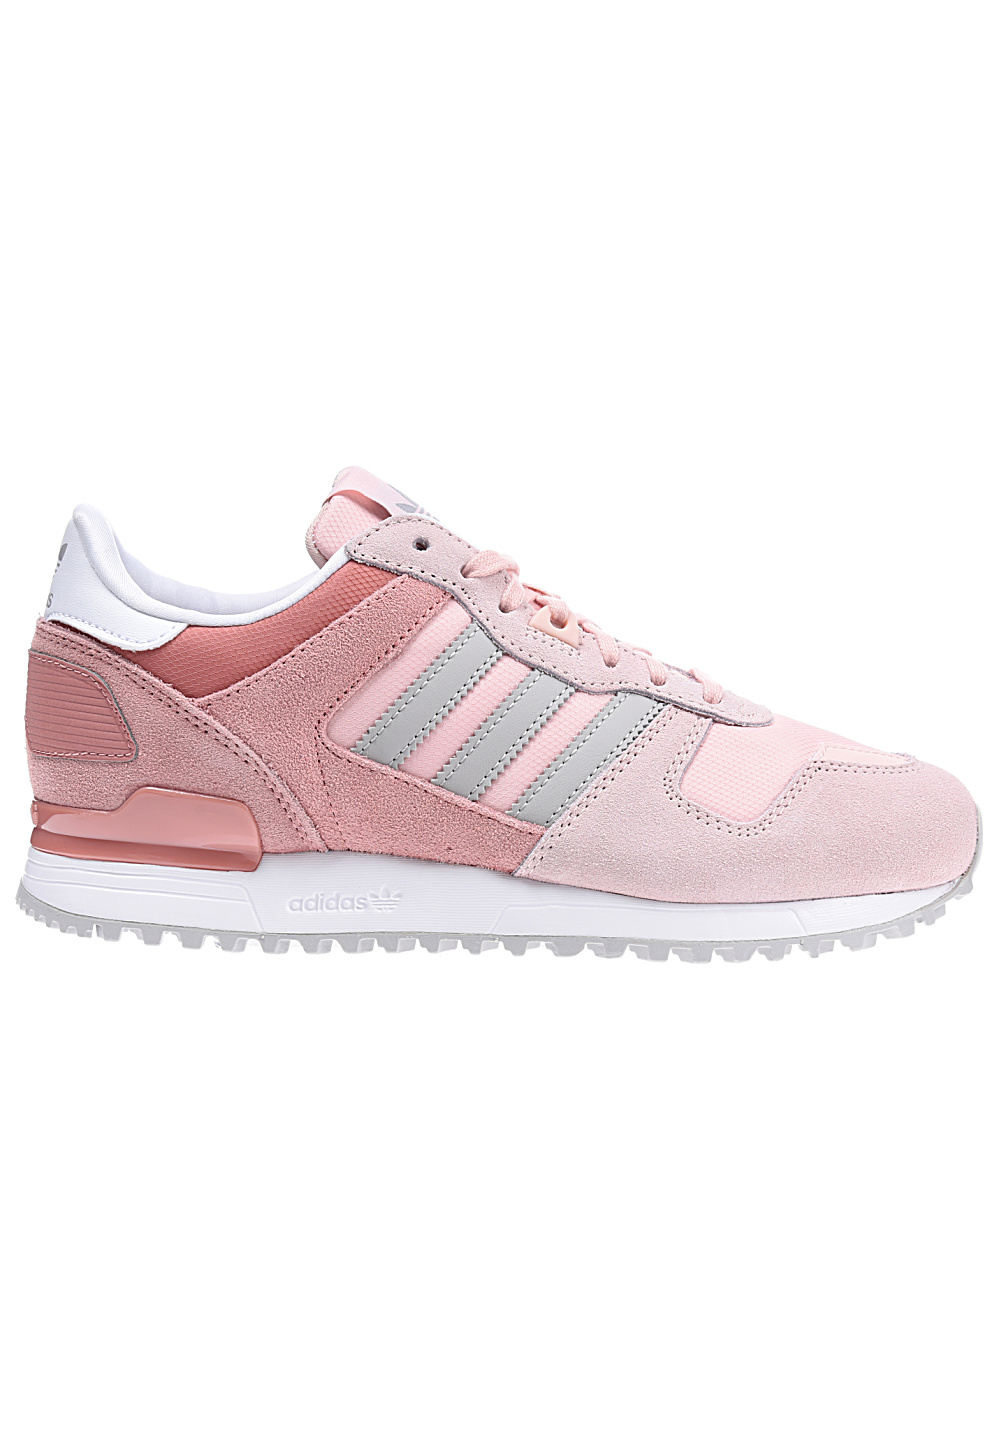 best quality fashion authorized site ADIDAS ORIGINALS ZX 700 - Sneakers for Women - Pink